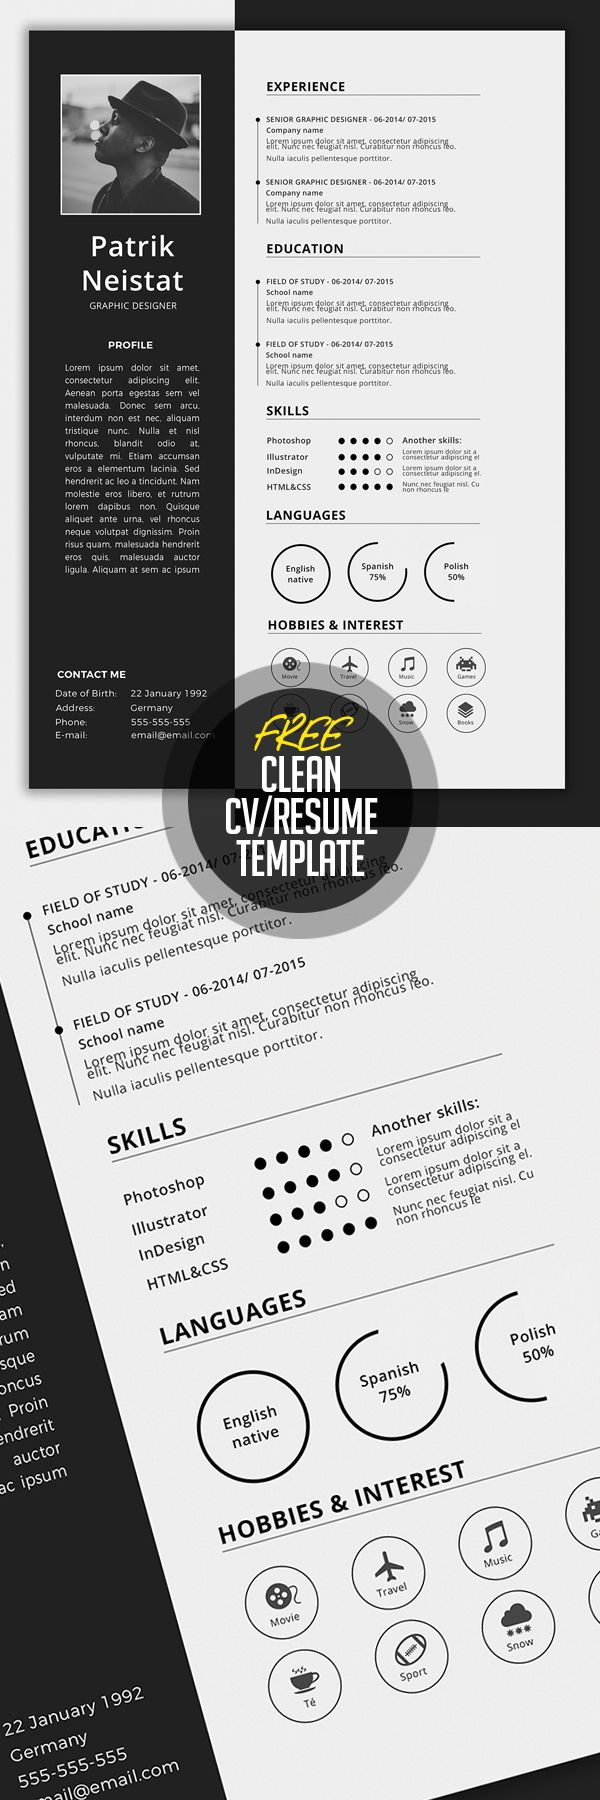 50 Free Resume Templates Best Of 2018 49 Resume Template Free Infographic Resume Free Resume Template Download